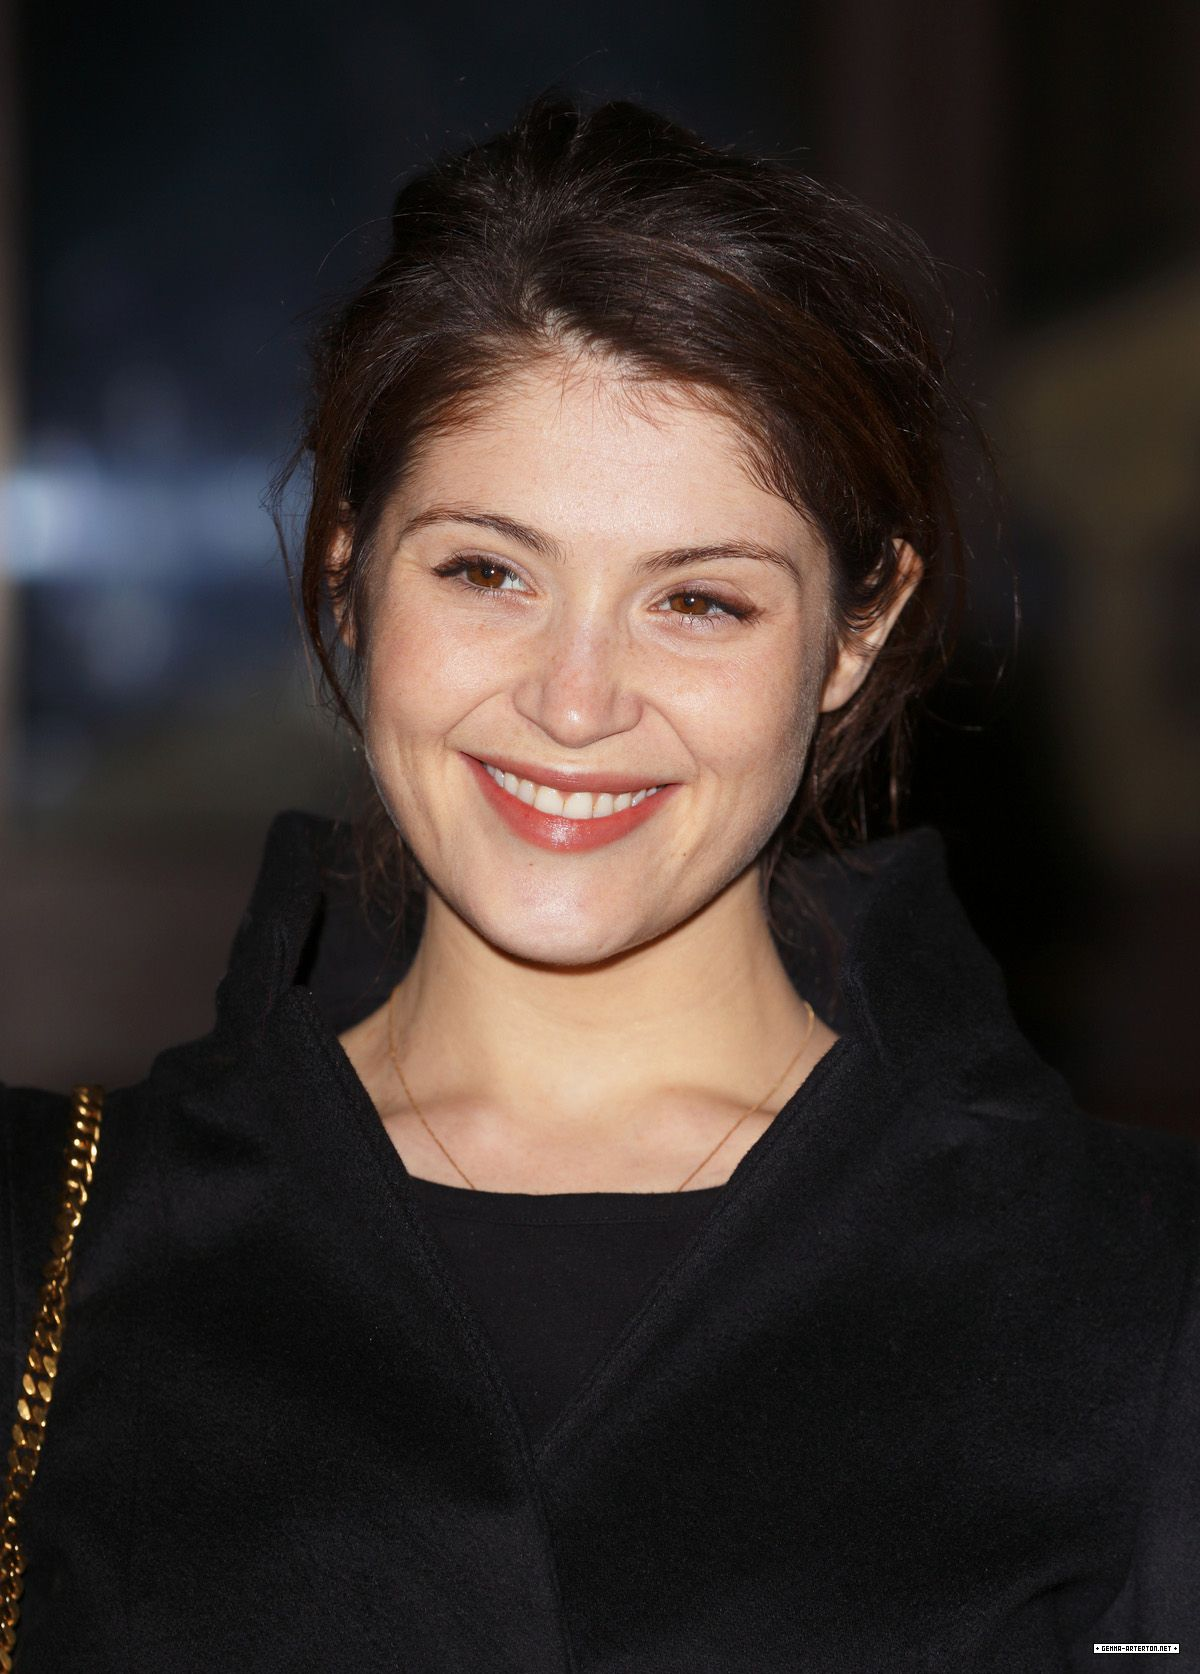 GEMMA ARTERTON at Dramatic Arts Reception at Buckingham Palace